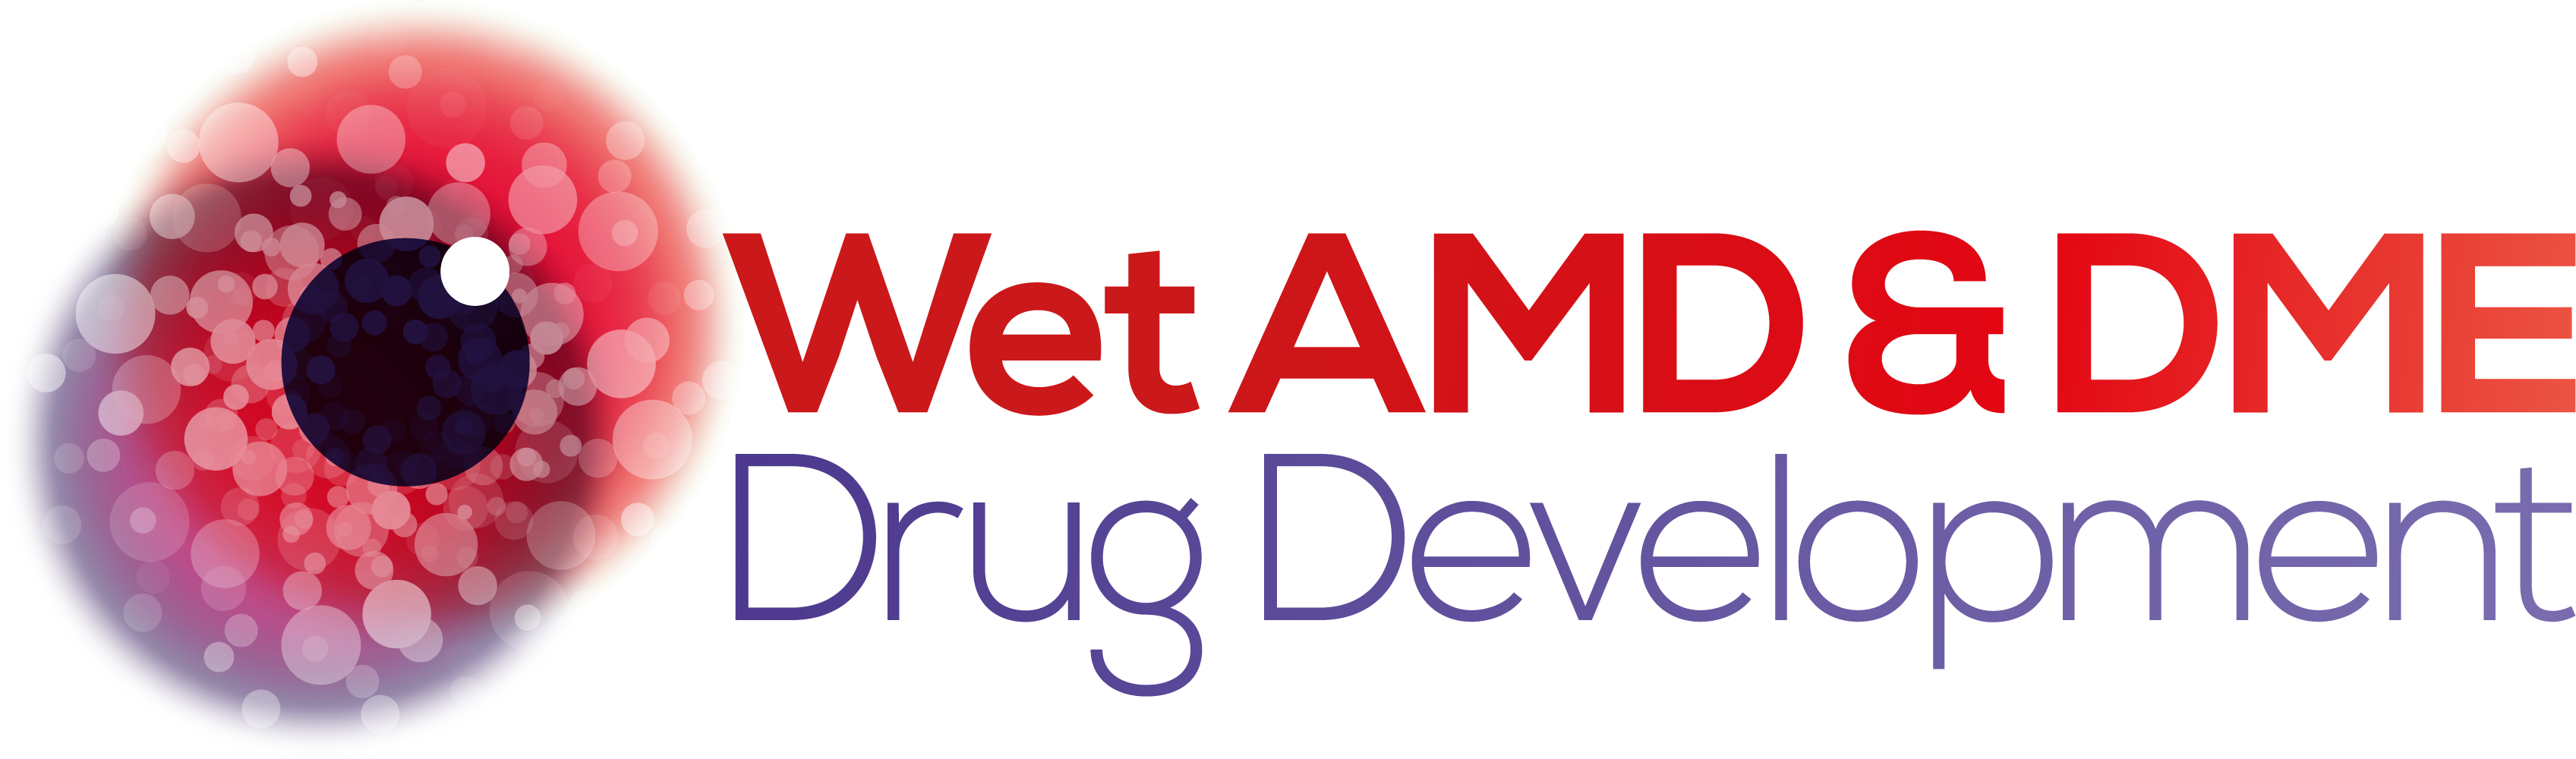 Wet AMD & DME Drug Development logo FINAL